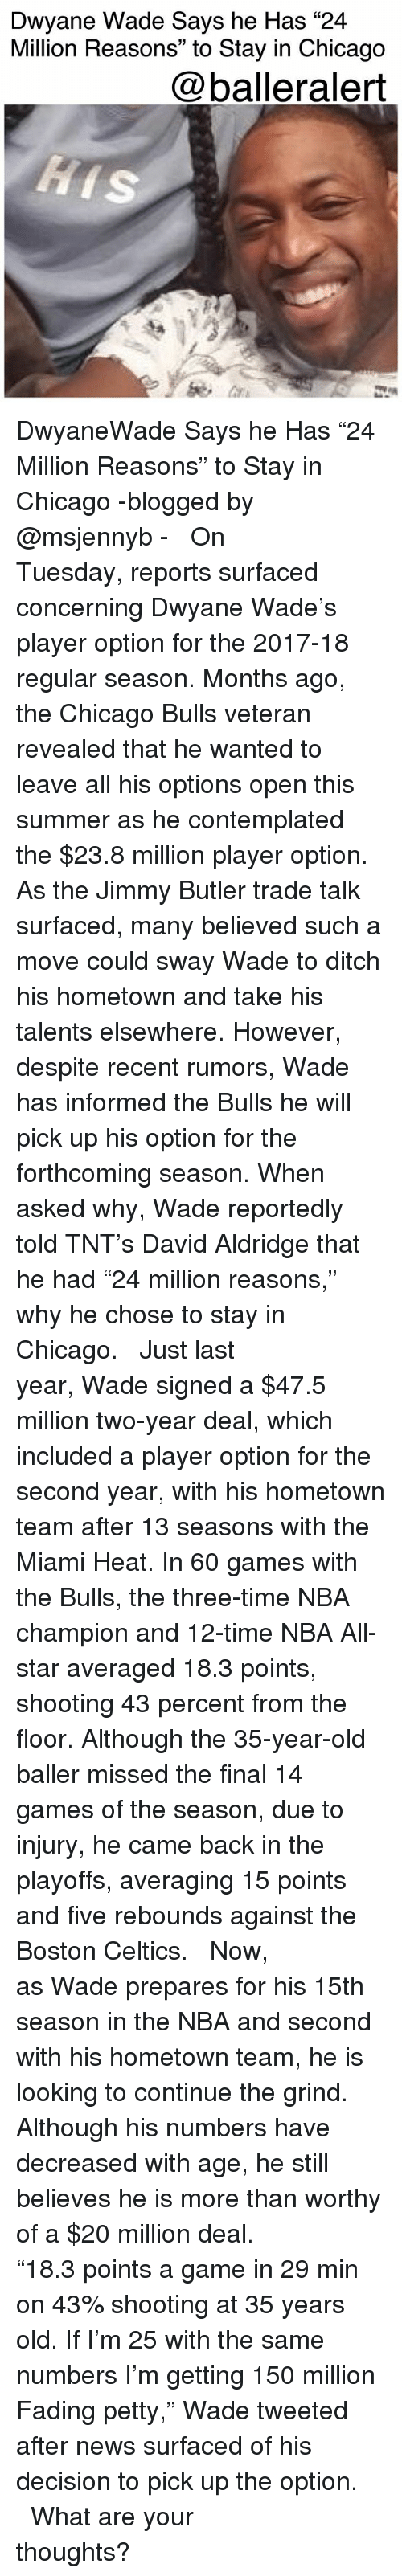 "nba all stars: Dwyane Wade Says he Has ""24  Million Reasons"" to Stay in Chicago  @balleralert DwyaneWade Says he Has ""24 Million Reasons"" to Stay in Chicago -blogged by @msjennyb - ⠀⠀⠀⠀⠀⠀⠀ ⠀⠀⠀⠀⠀⠀⠀ On Tuesday, reports surfaced concerning Dwyane Wade's player option for the 2017-18 regular season. Months ago, the Chicago Bulls veteran revealed that he wanted to leave all his options open this summer as he contemplated the $23.8 million player option. As the Jimmy Butler trade talk surfaced, many believed such a move could sway Wade to ditch his hometown and take his talents elsewhere. However, despite recent rumors, Wade has informed the Bulls he will pick up his option for the forthcoming season. When asked why, Wade reportedly told TNT's David Aldridge that he had ""24 million reasons,"" why he chose to stay in Chicago. ⠀⠀⠀⠀⠀⠀⠀ ⠀⠀⠀⠀⠀⠀⠀ Just last year, Wade signed a $47.5 million two-year deal, which included a player option for the second year, with his hometown team after 13 seasons with the Miami Heat. In 60 games with the Bulls, the three-time NBA champion and 12-time NBA All-star averaged 18.3 points, shooting 43 percent from the floor. Although the 35-year-old baller missed the final 14 games of the season, due to injury, he came back in the playoffs, averaging 15 points and five rebounds against the Boston Celtics. ⠀⠀⠀⠀⠀⠀⠀ ⠀⠀⠀⠀⠀⠀⠀ Now, as Wade prepares for his 15th season in the NBA and second with his hometown team, he is looking to continue the grind. Although his numbers have decreased with age, he still believes he is more than worthy of a $20 million deal. ⠀⠀⠀⠀⠀⠀⠀ ⠀⠀⠀⠀⠀⠀⠀ ""18.3 points a game in 29 min on 43% shooting at 35 years old. If I'm 25 with the same numbers I'm getting 150 million Fading petty,"" Wade tweeted after news surfaced of his decision to pick up the option. ⠀⠀⠀⠀⠀⠀⠀ ⠀⠀⠀⠀⠀⠀⠀ What are your thoughts?"